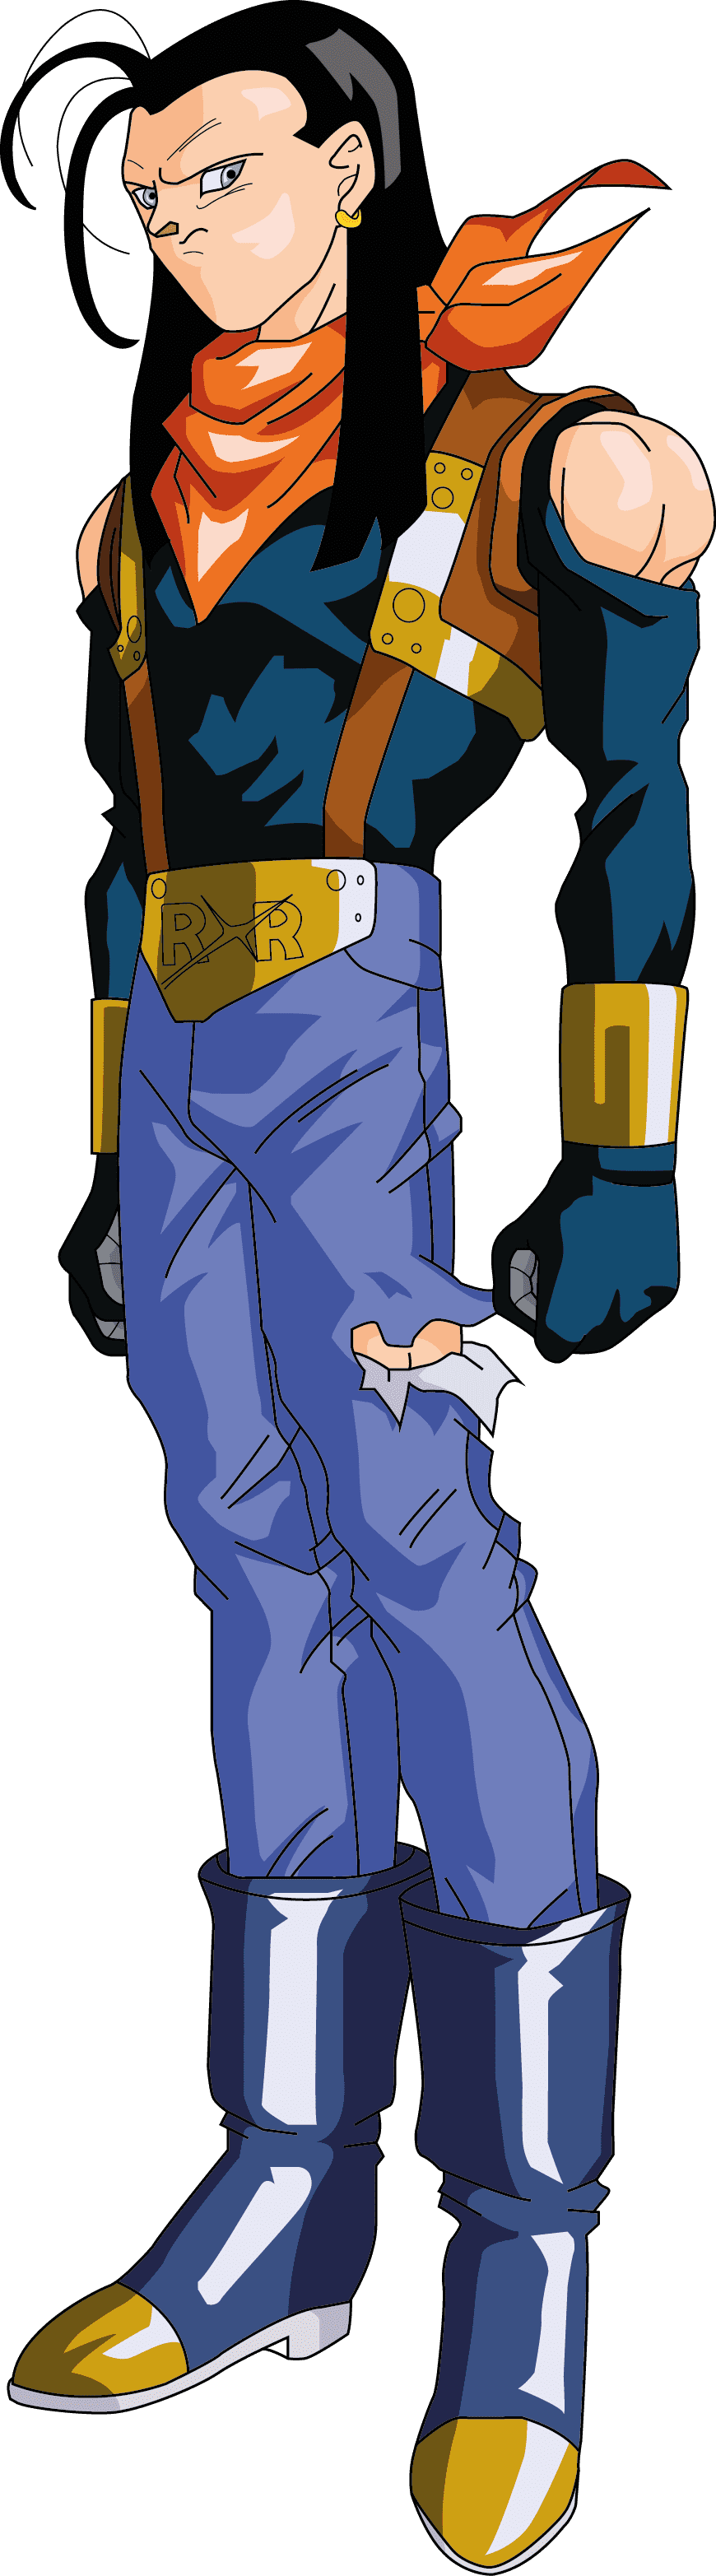 https://dragonballwiki.net/wp-content/uploads/2016/12/super_17_by_luigicuau10-d5ig3d9.png